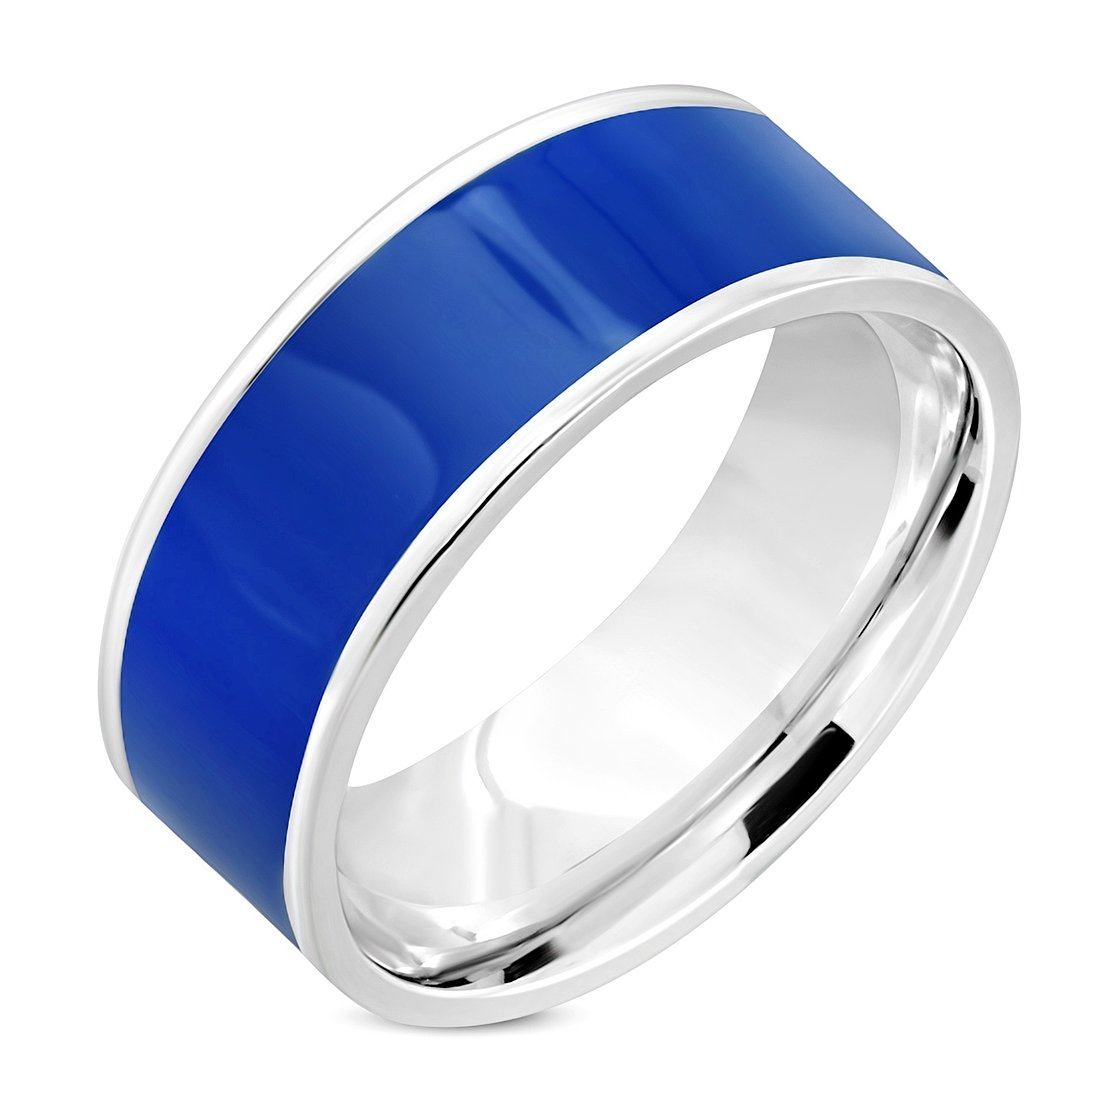 Stainless Steel 2 Color Blue Enameled Comfort Fit Flat Band Ring